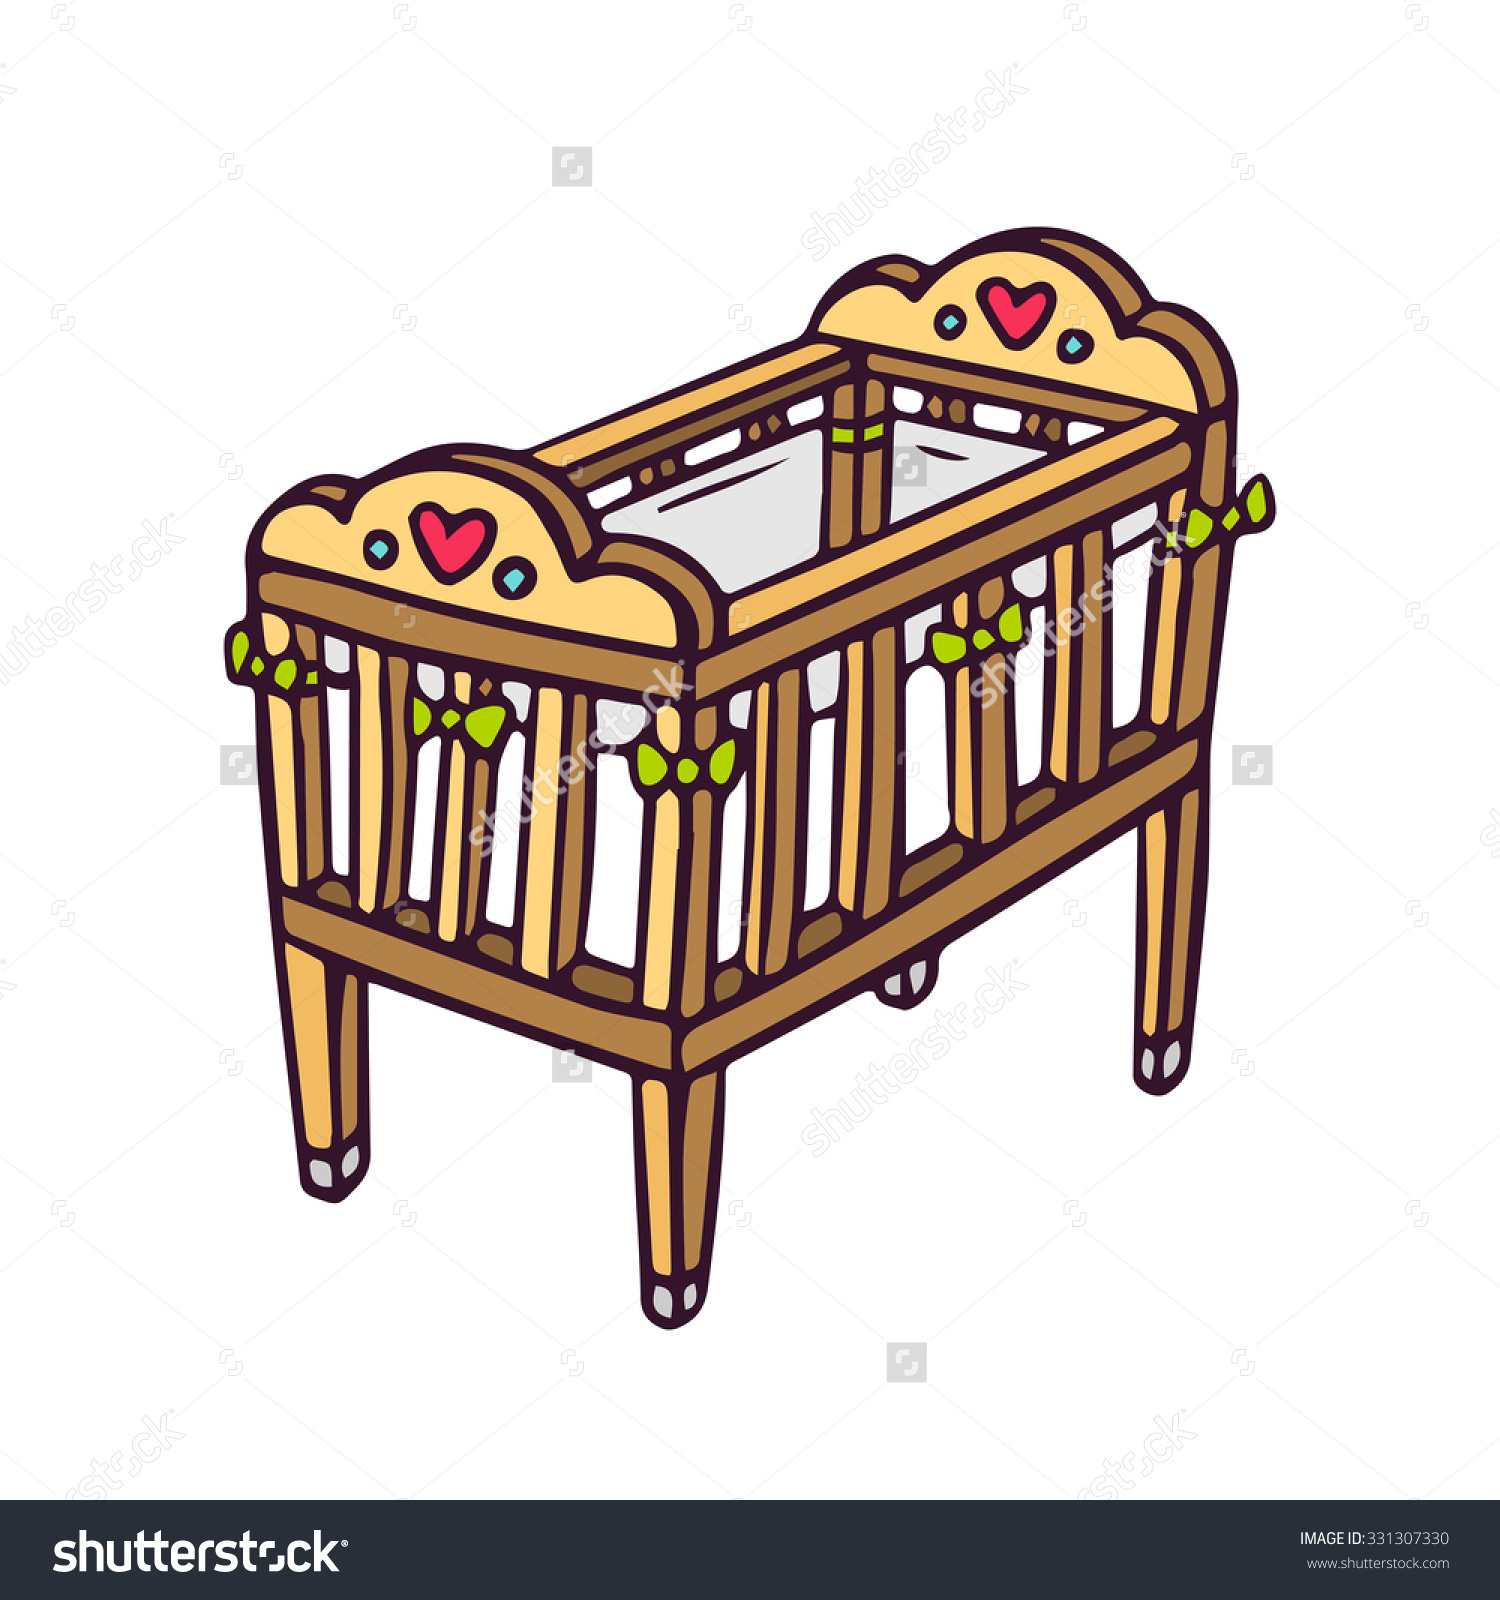 Baby cot clipart.